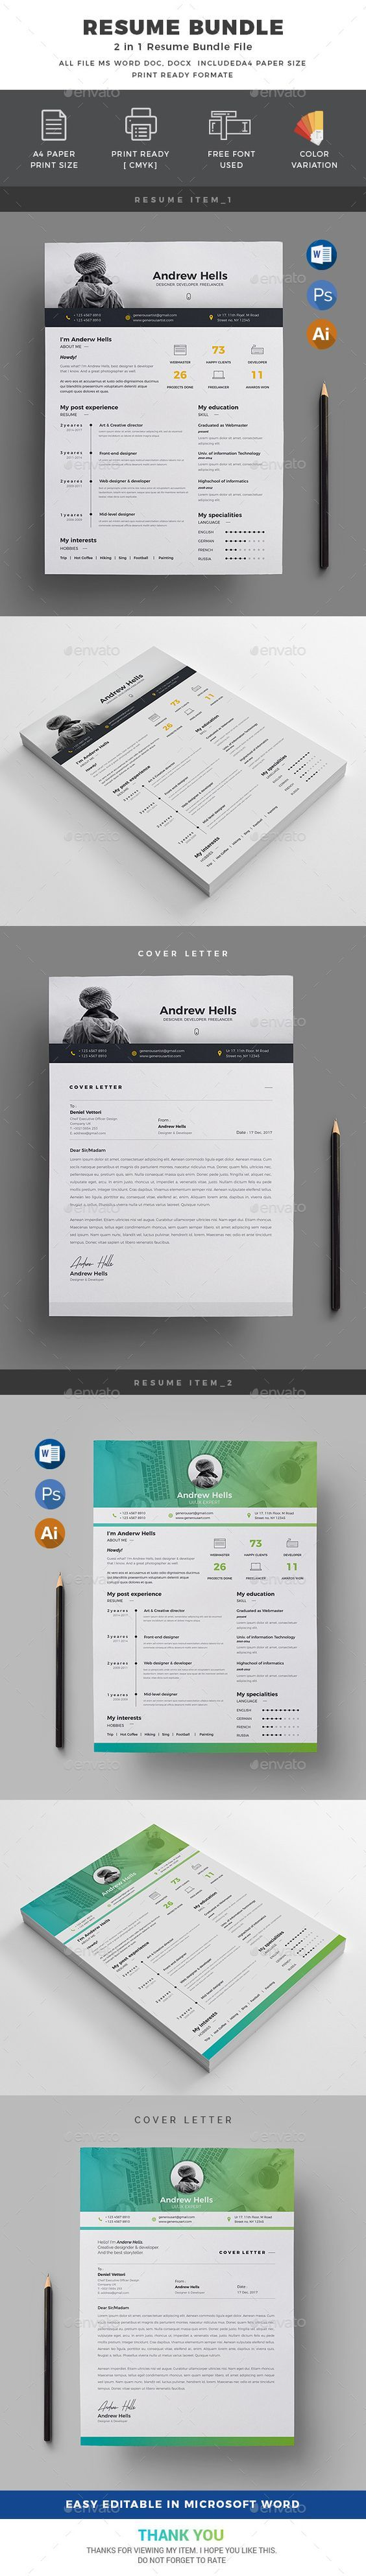 Resume Bundle2 in 1 354 best Resumes